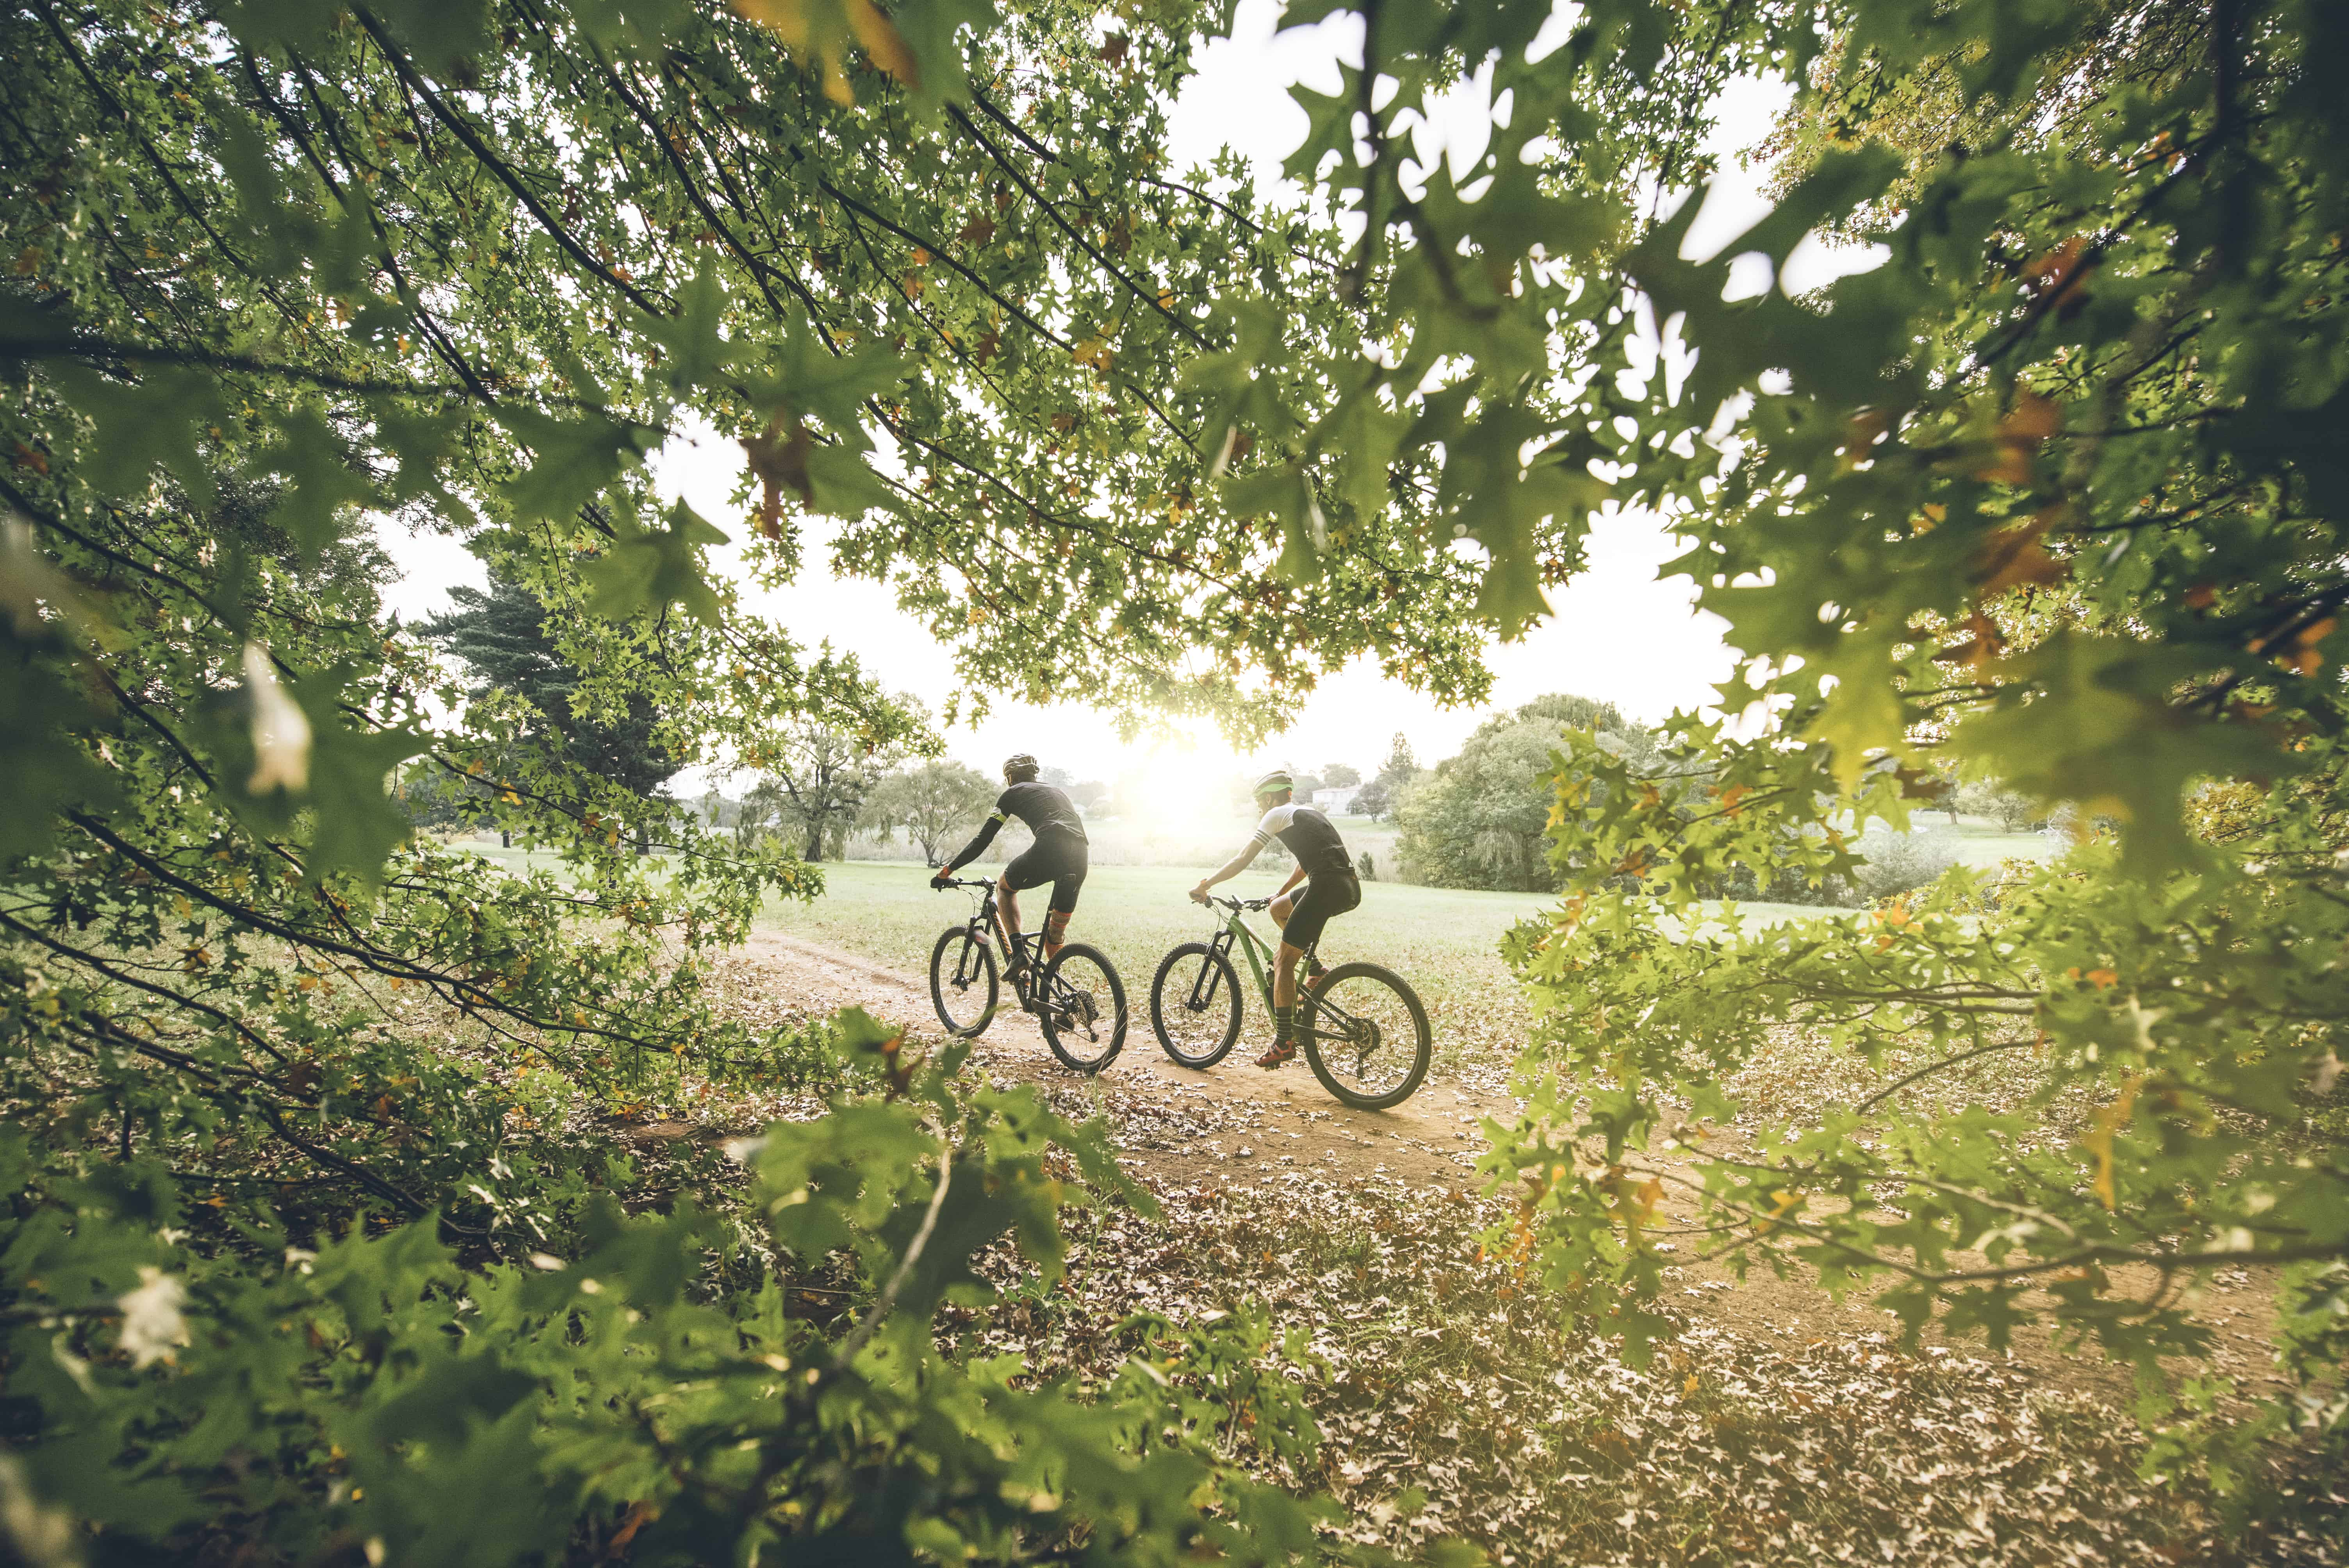 wow-rides-die-spruit-bicycling-magazine-dna-photograpers-54